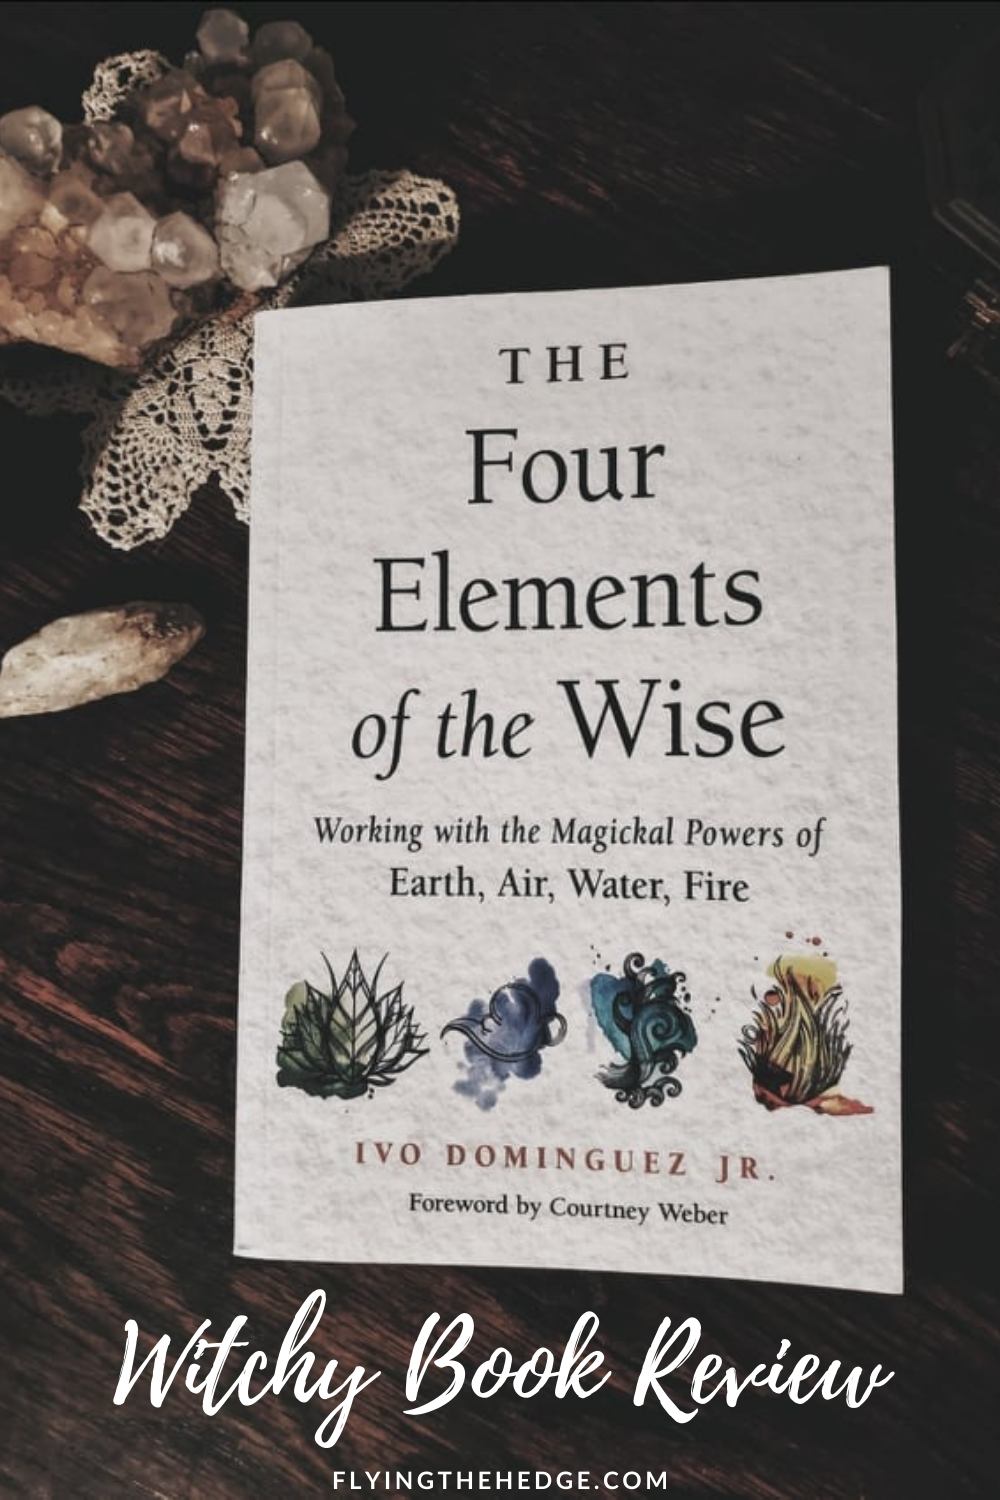 book review, witchy book review, witch reads, pagan, witch, occult, witchcraft, elemental witchcraft, elements, air, water, fire, earth